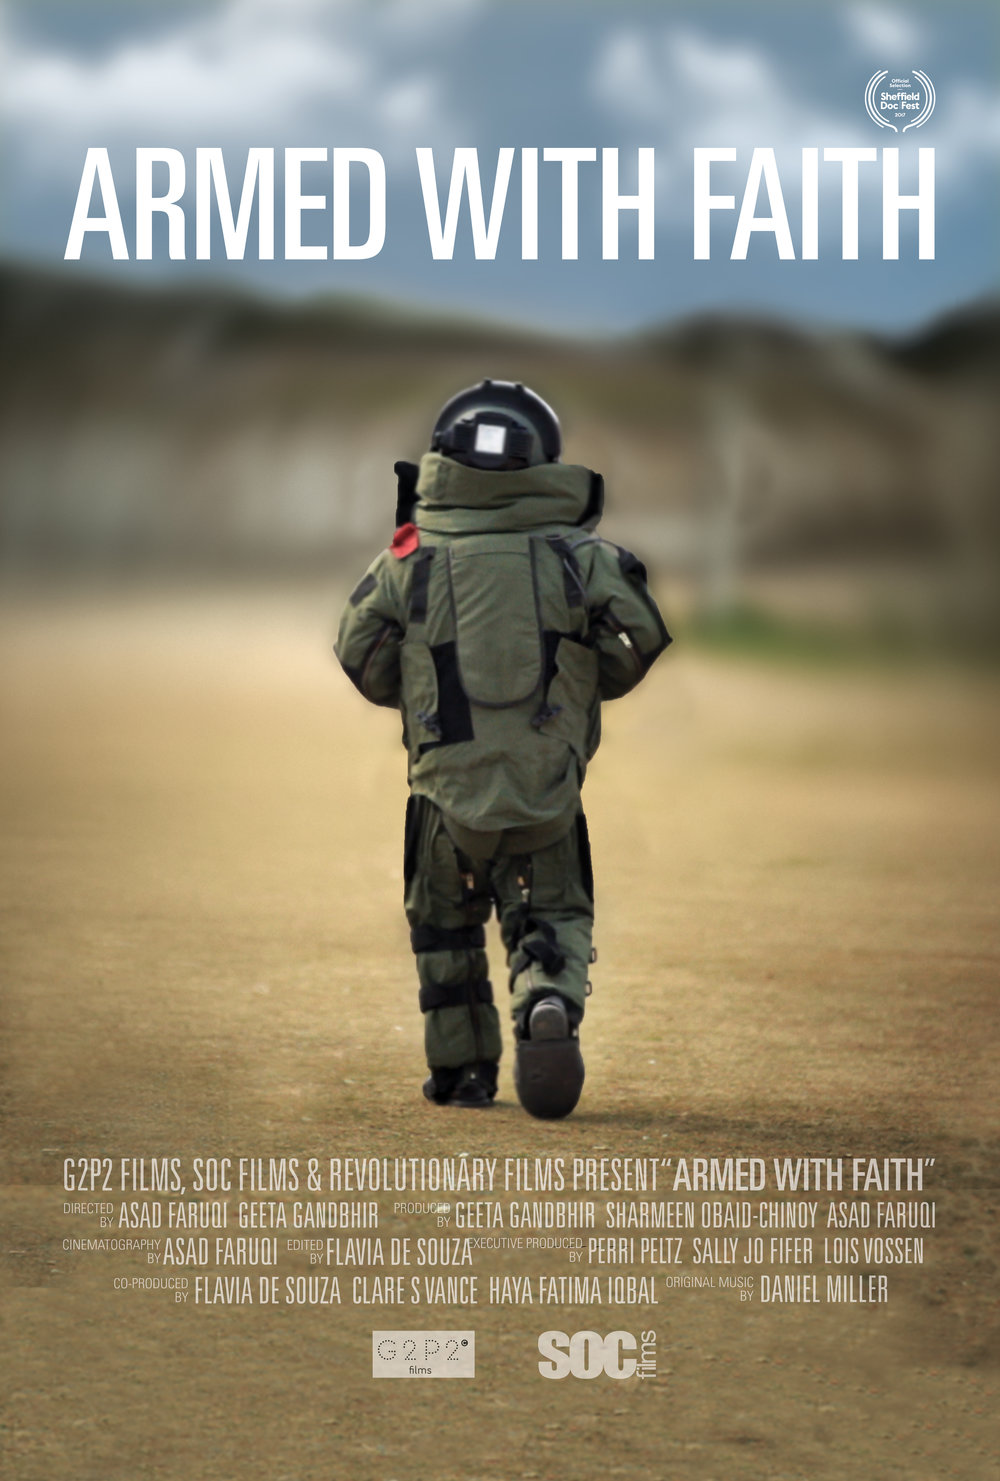 AWF_Armed_with_Faith_Poster.jpg